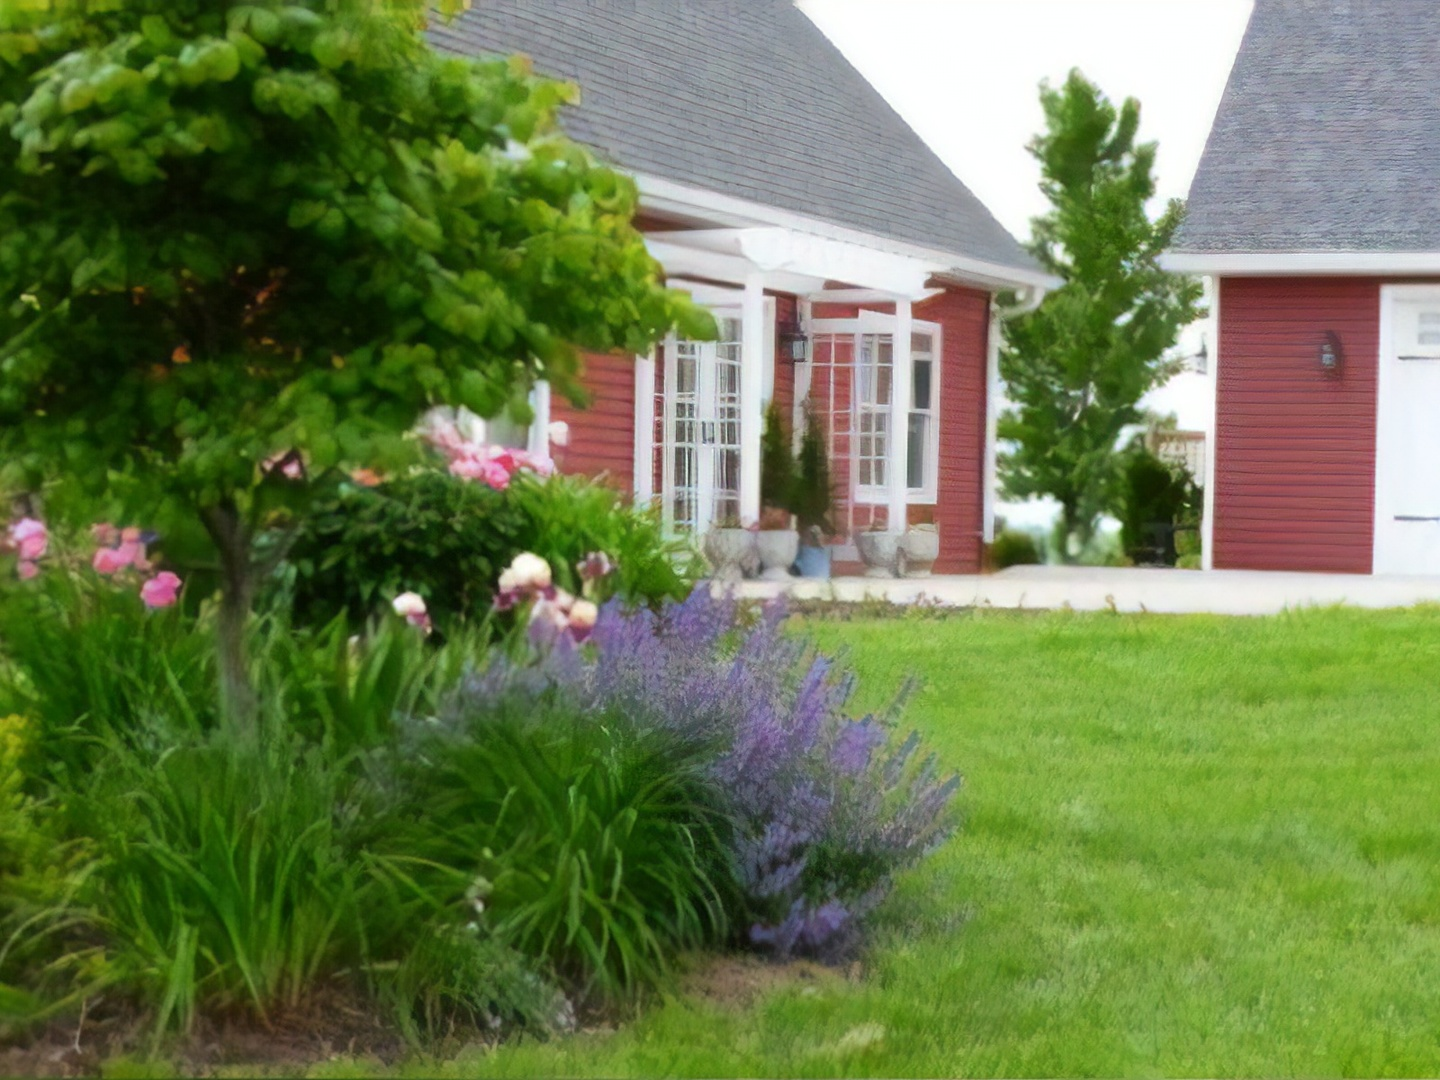 A close up of a flower garden in front of a house at Longview Farms Bed & Breakfast Carriage House.